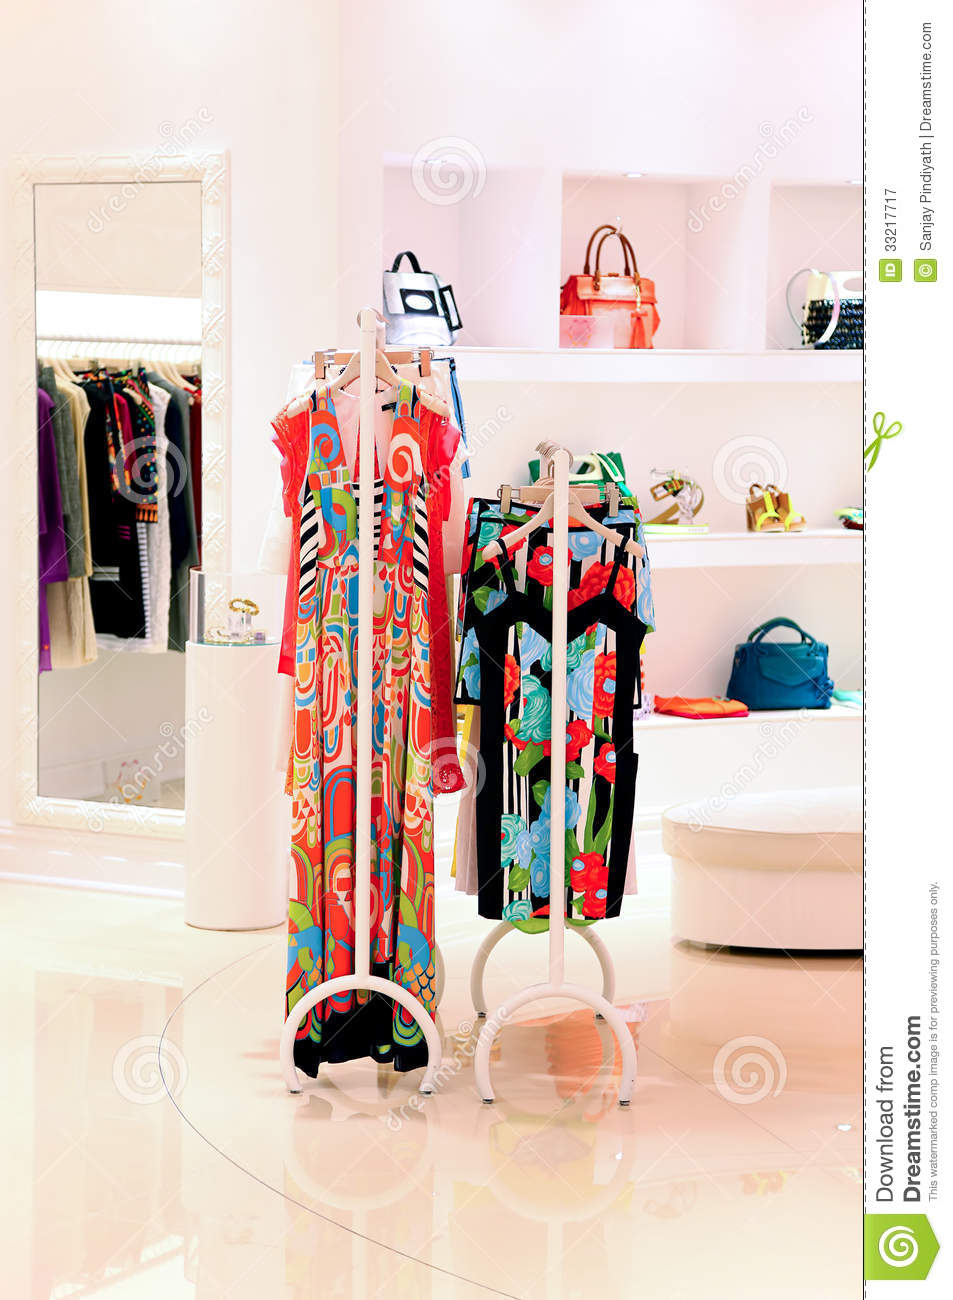 Girl clothes stores. Cheap clothing stores